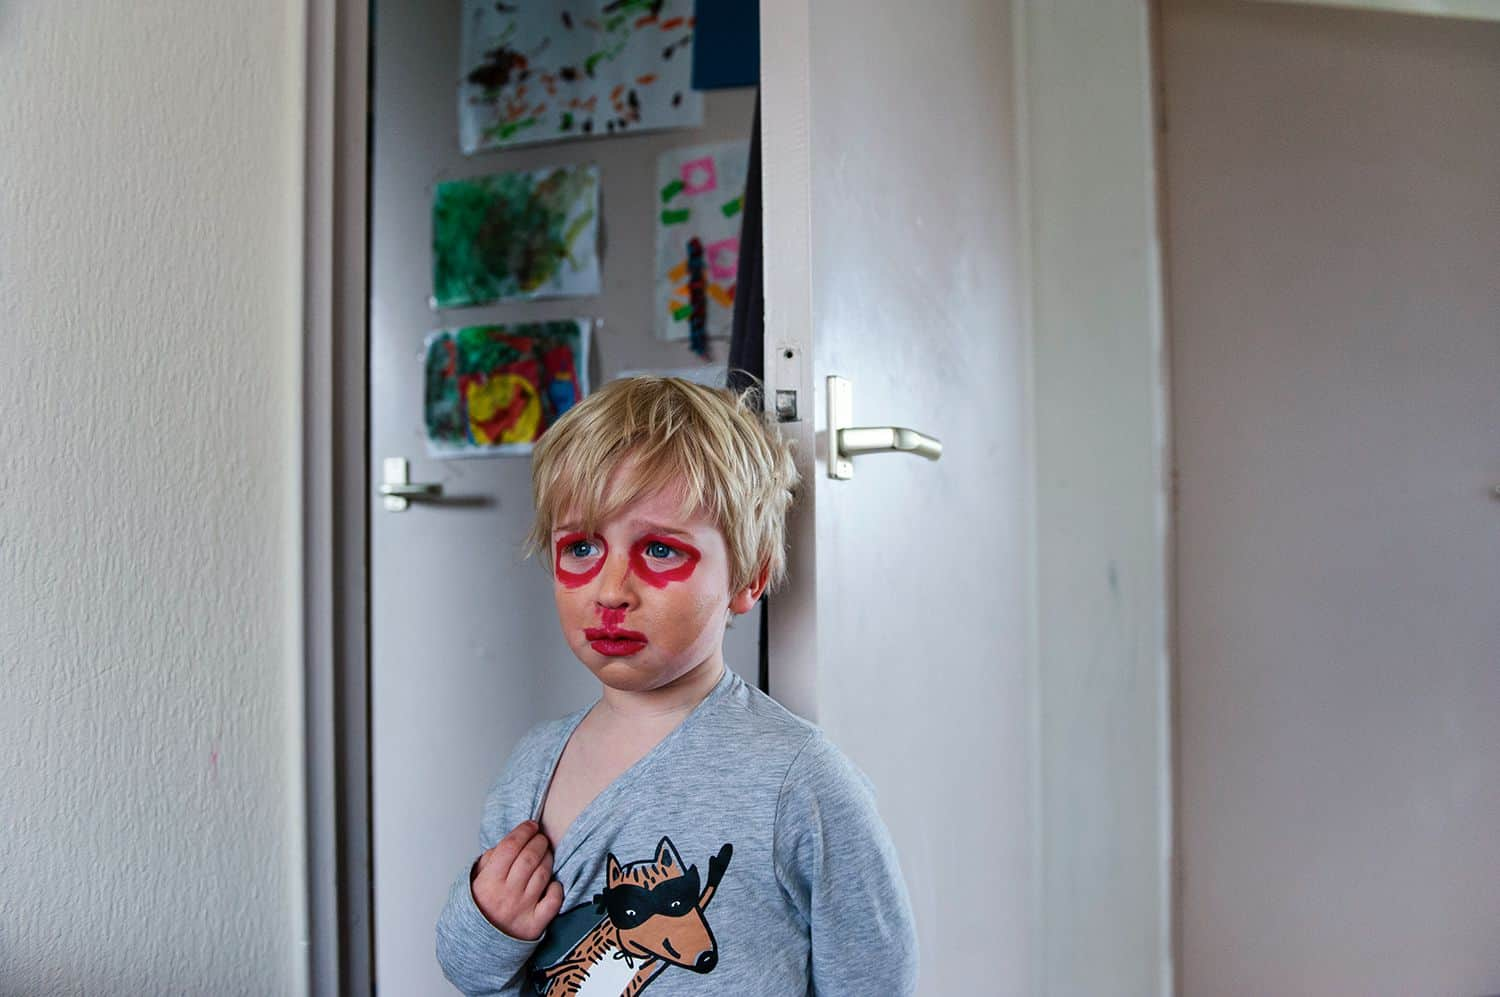 A little boy tugs at the neck of his sweatshirt looking distressed as he stands in a kitchen wearing self-applied makeup